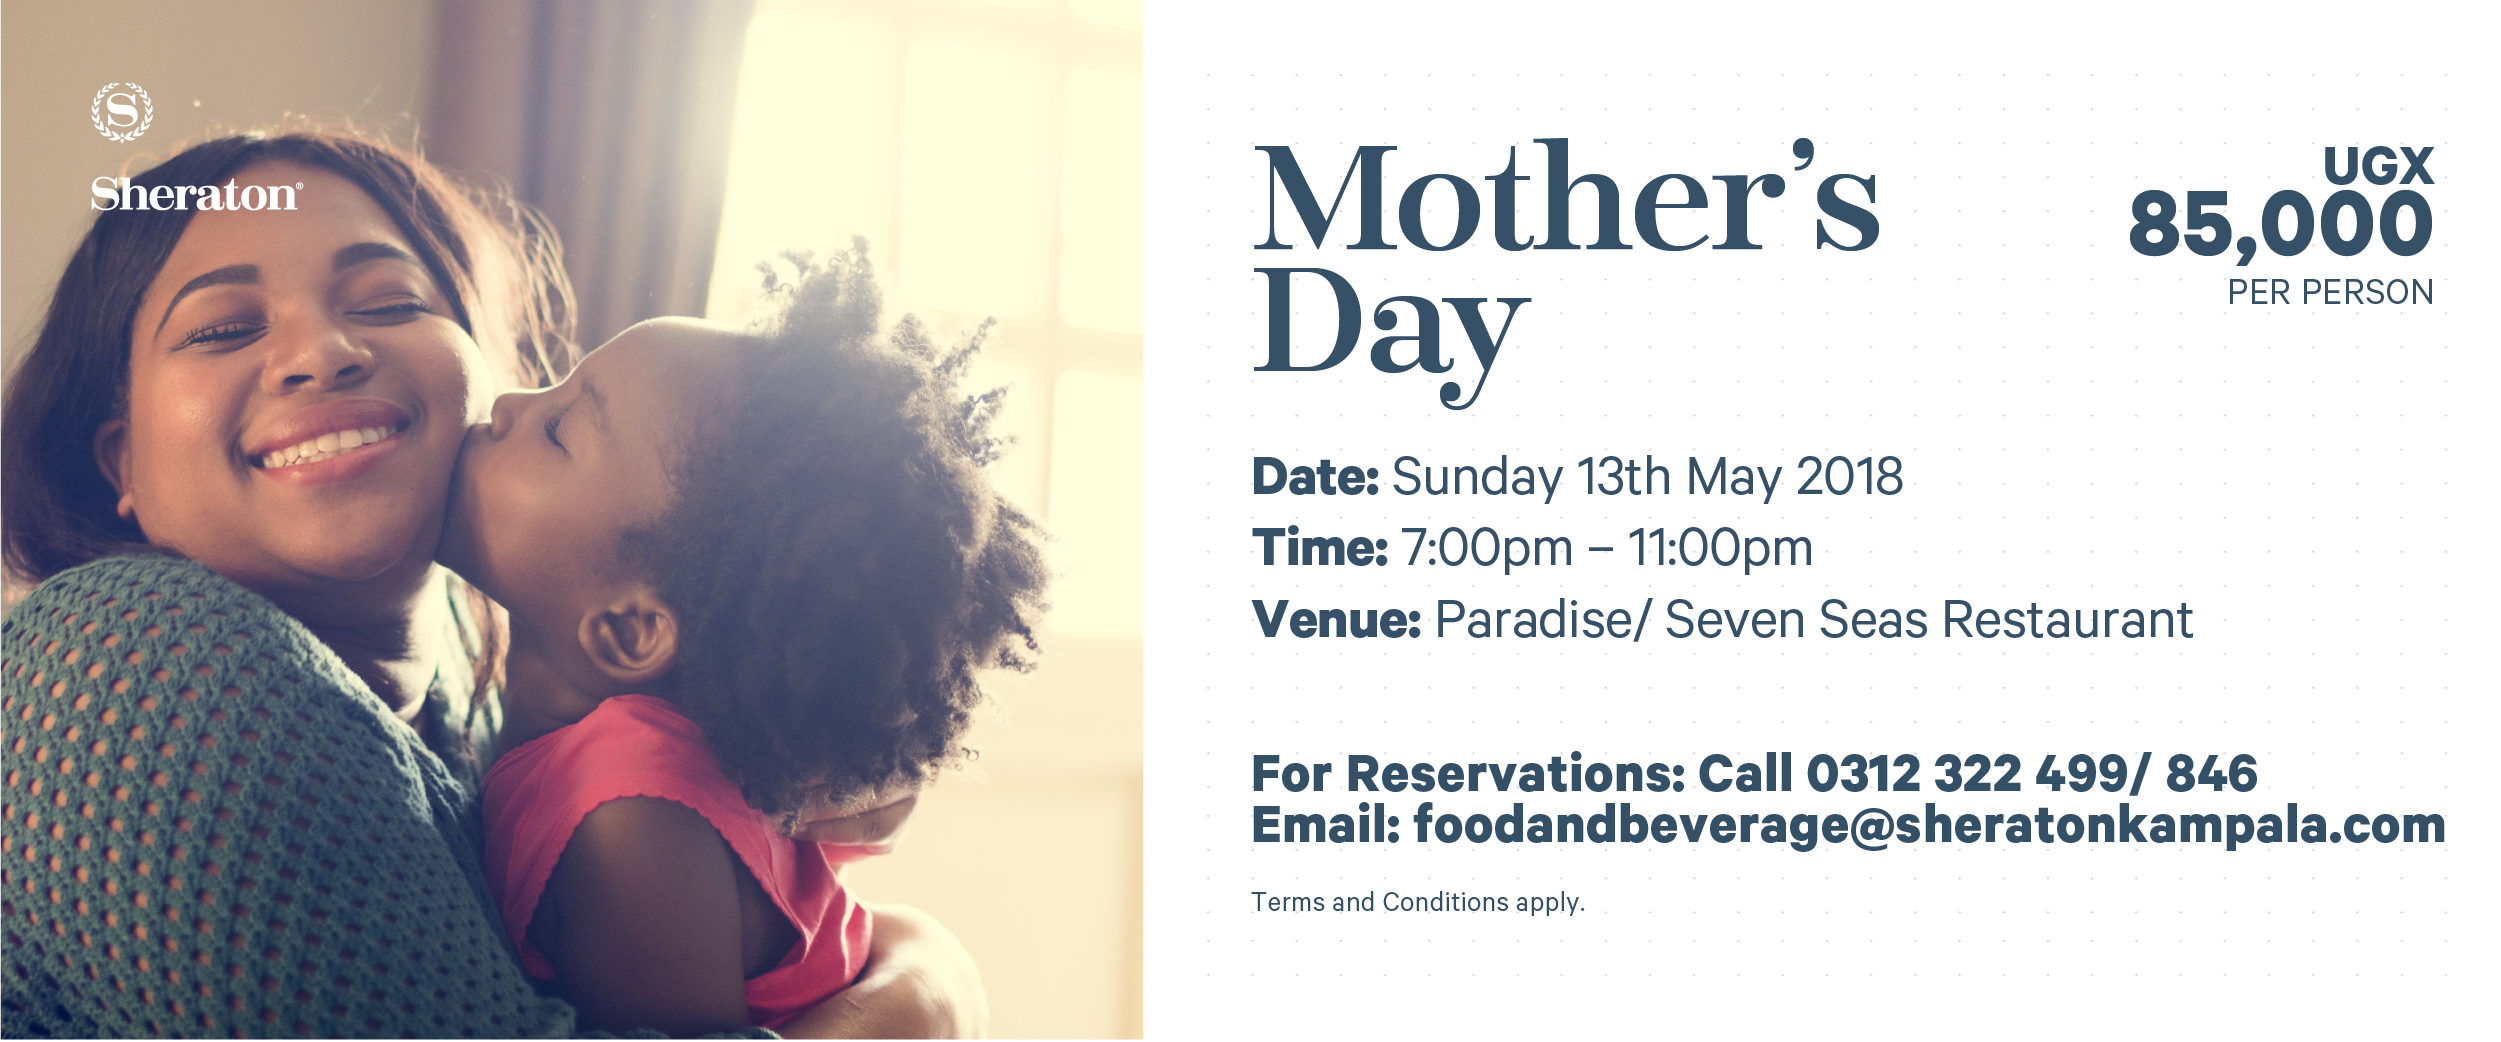 Take your mother to the Sheraton to celebrate her in style ...